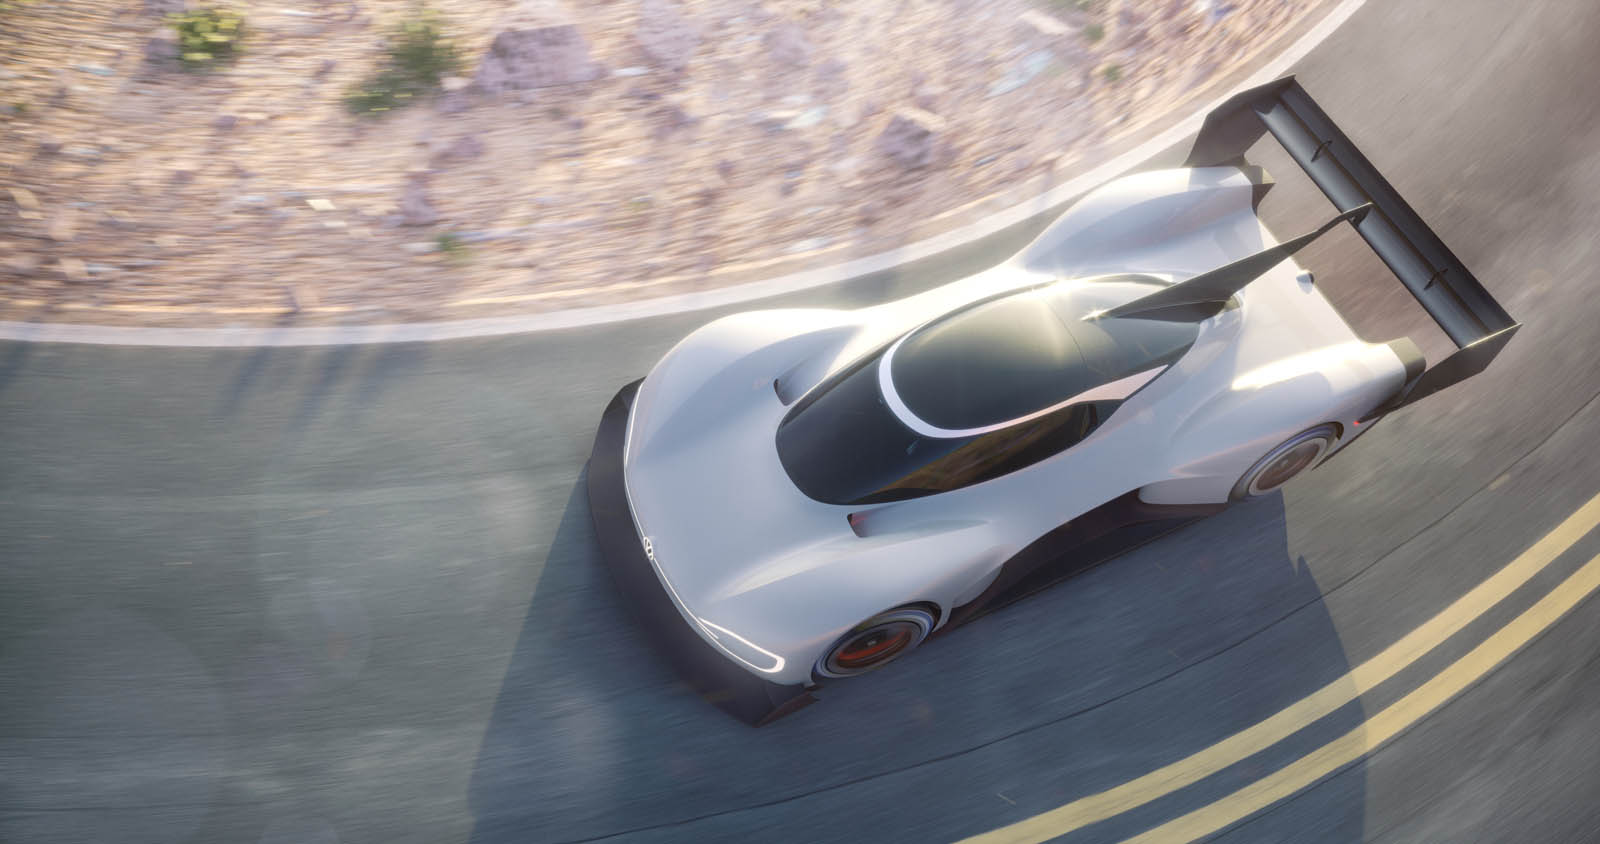 Volkswagen introduces its all-electric prototype racing auto